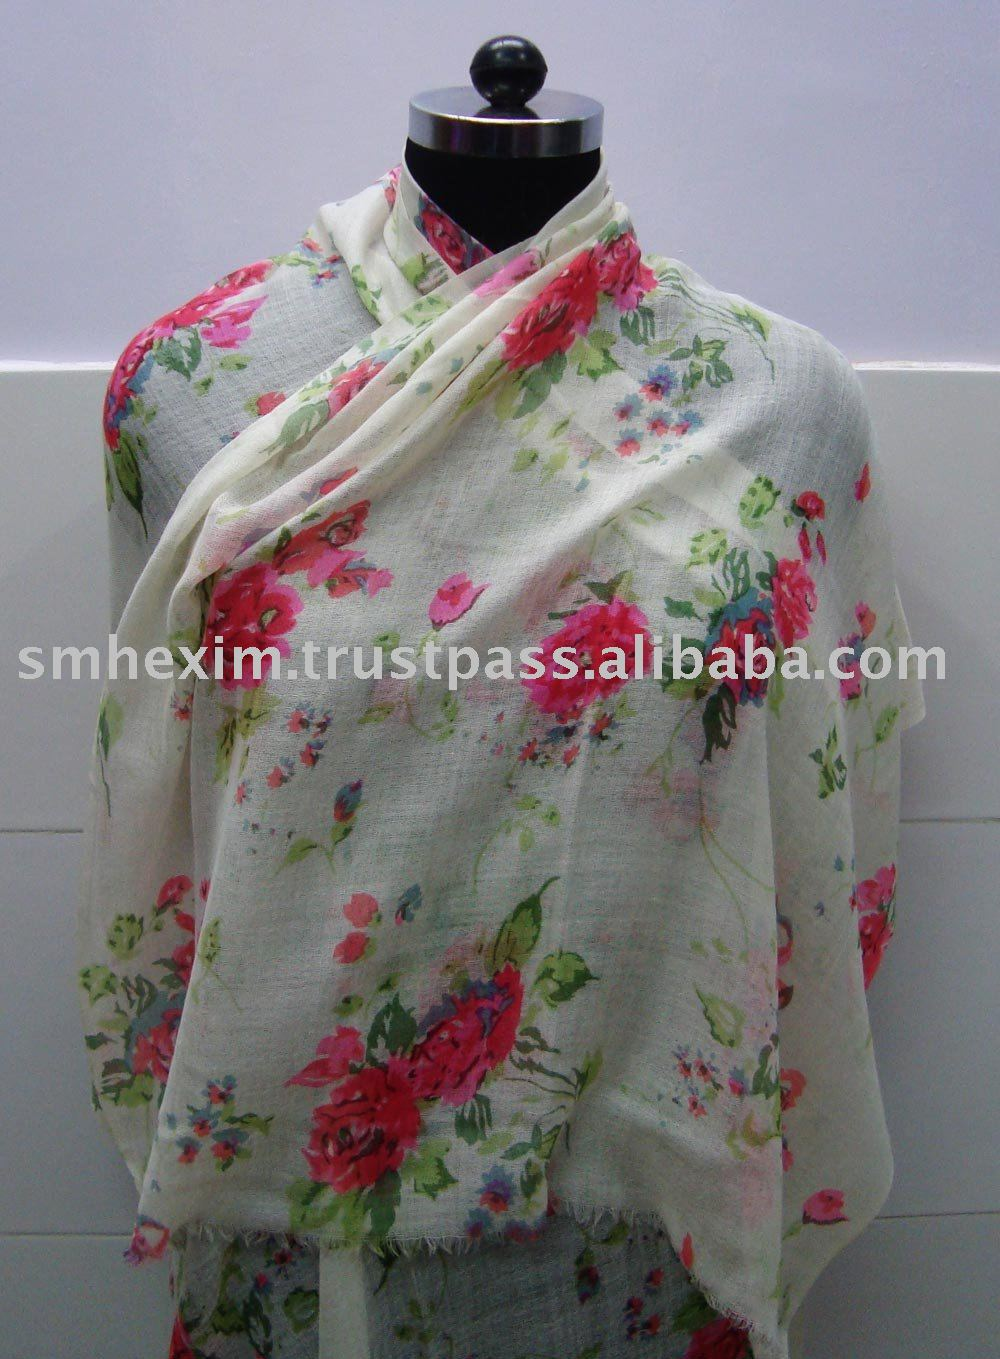 Pinted shawls and scarfs